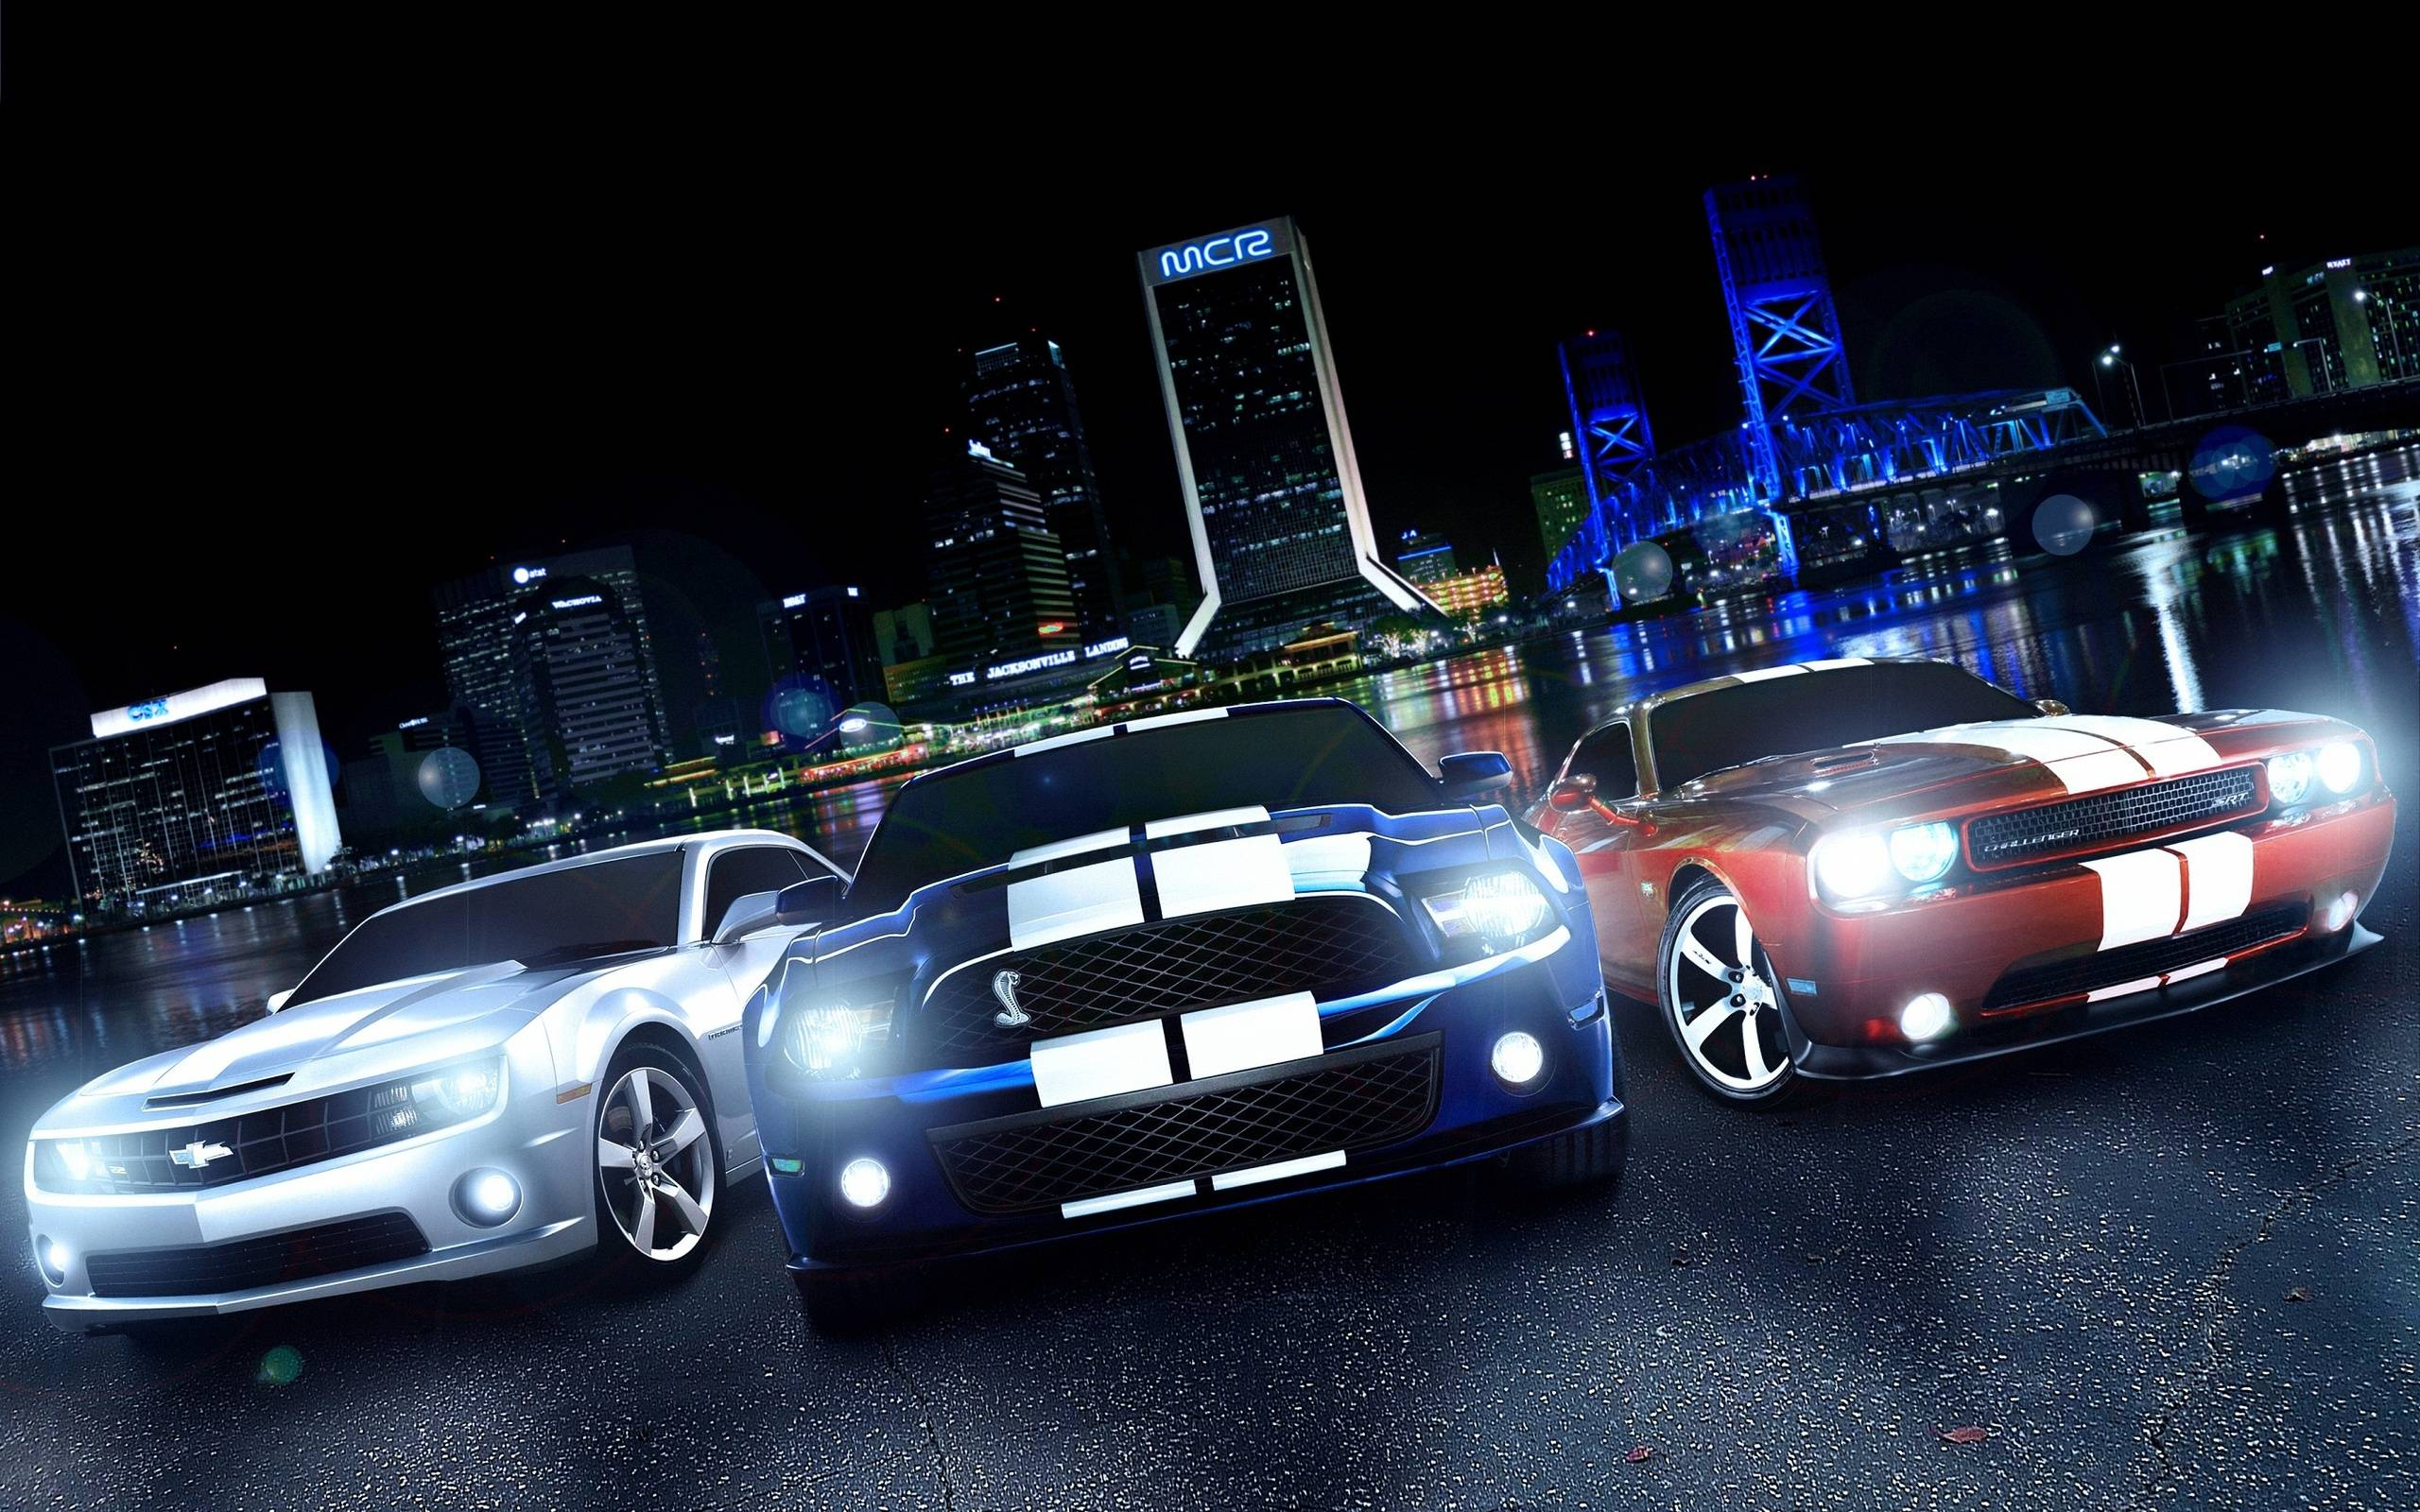 Mustang Wallpaper Images HD Wallpapers, Page 0 | Wallfoy.